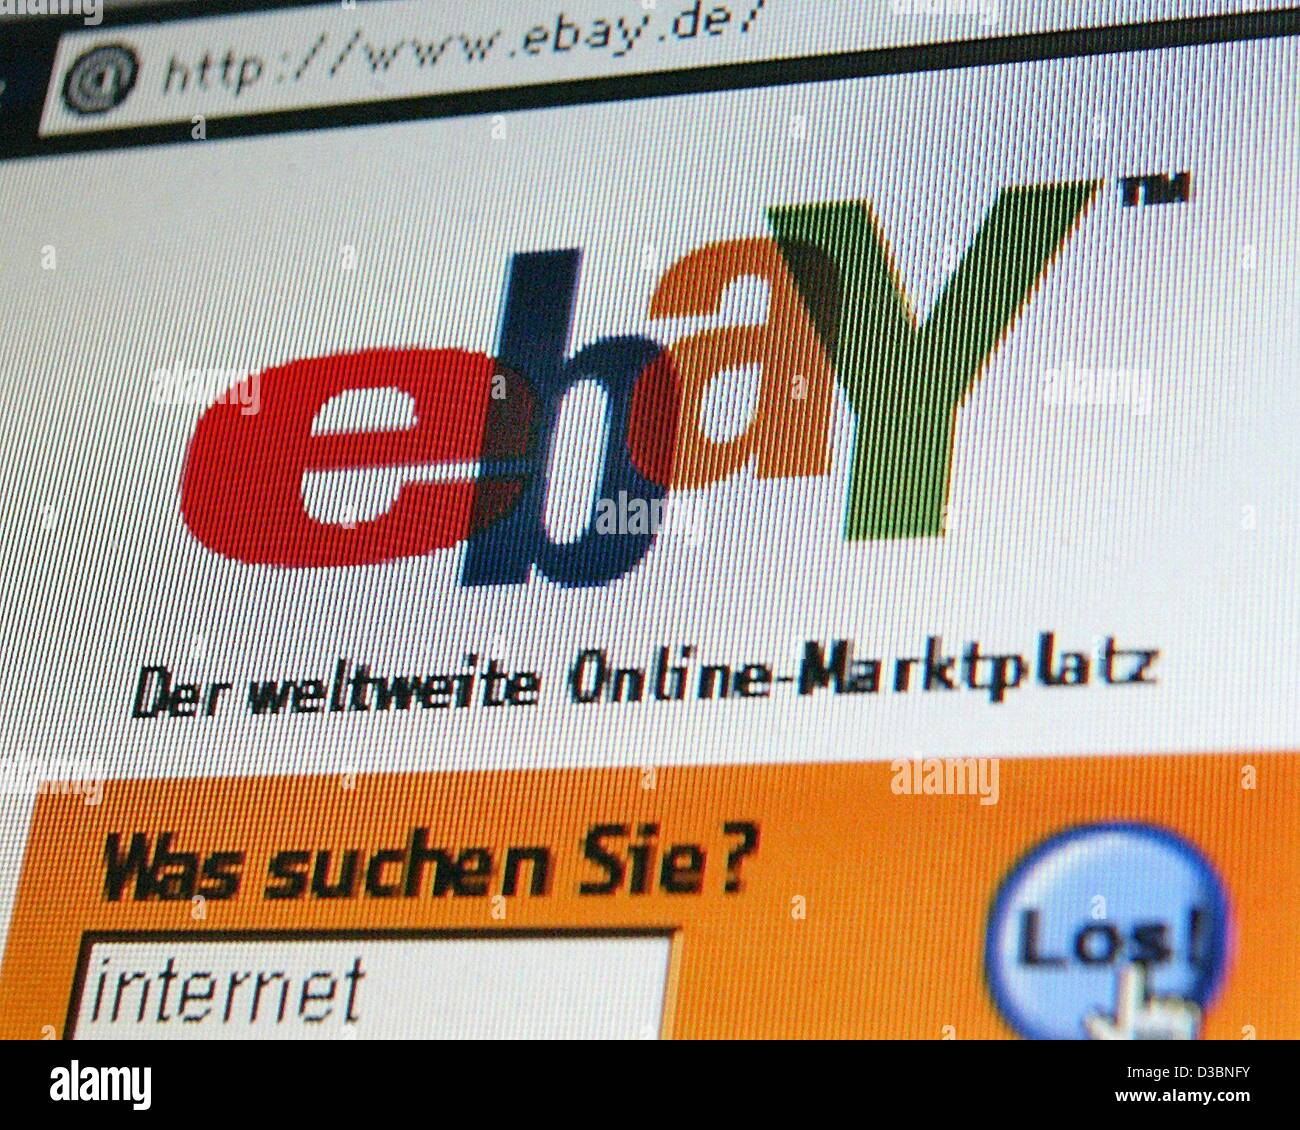 (dpa) - The logo of the online auction service 'ebay Deutschland' appears on a computer screen in Dortmund, Germany, Stock Photo